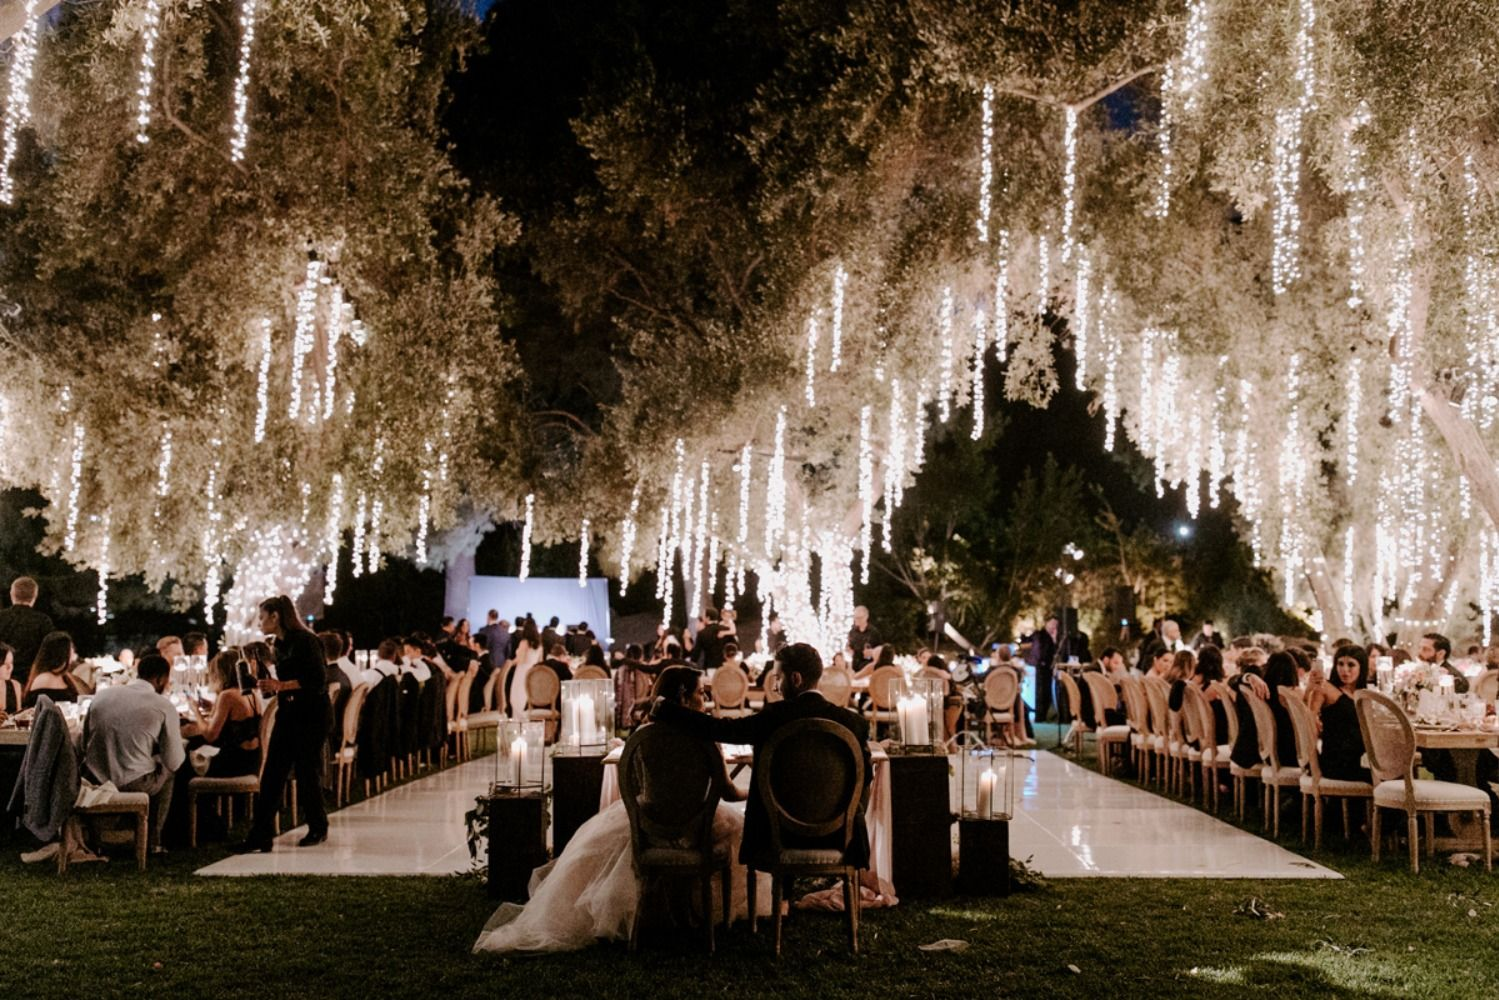 How To Have A Glamorous Midsummer Garden Wedding Backyard Wedding Ceremony Outdoor Wedding Garden Wedding